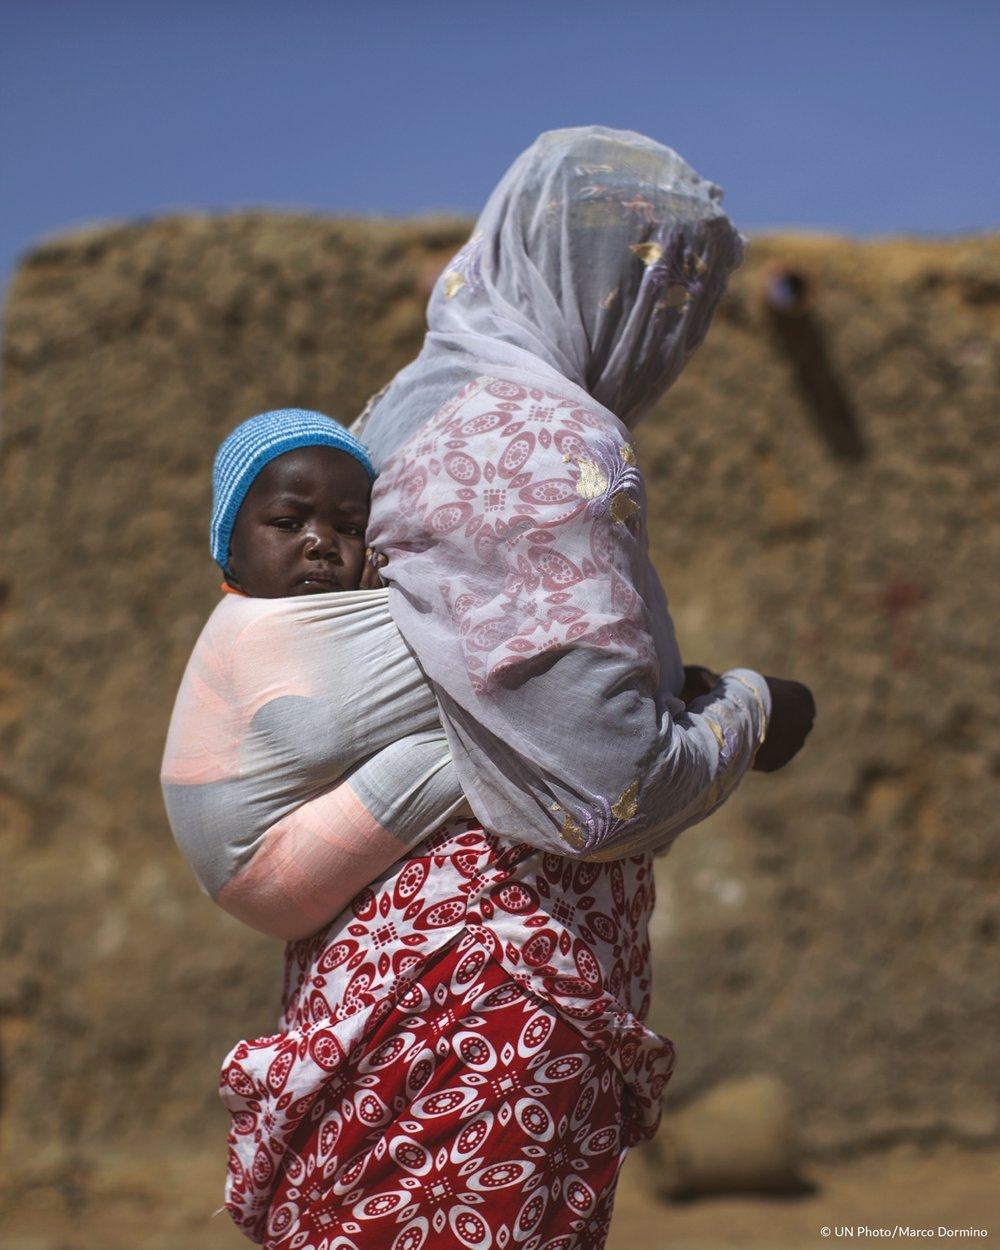 In Mali, a woman and her child displaced by violence in Timbuktu in 2015 walk through a village for internally displaced people in Mopti. Courtesy UNPhoto/Marco Dormino.